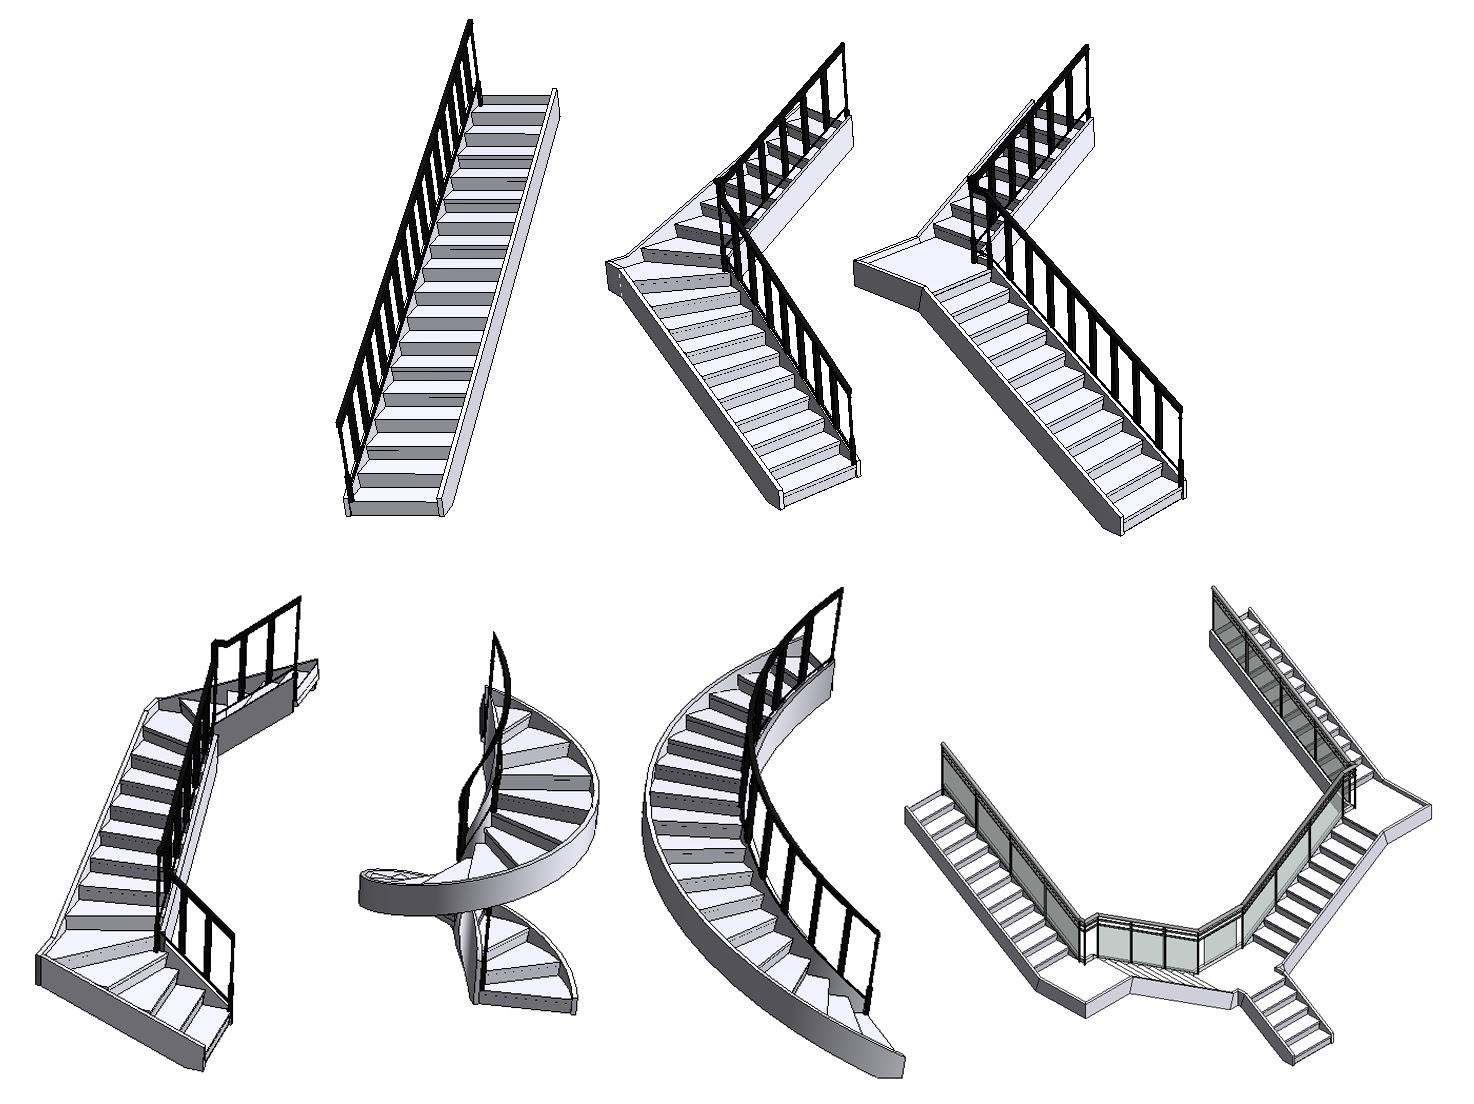 Stairs, Stairs, and More Stairs- We do need some more